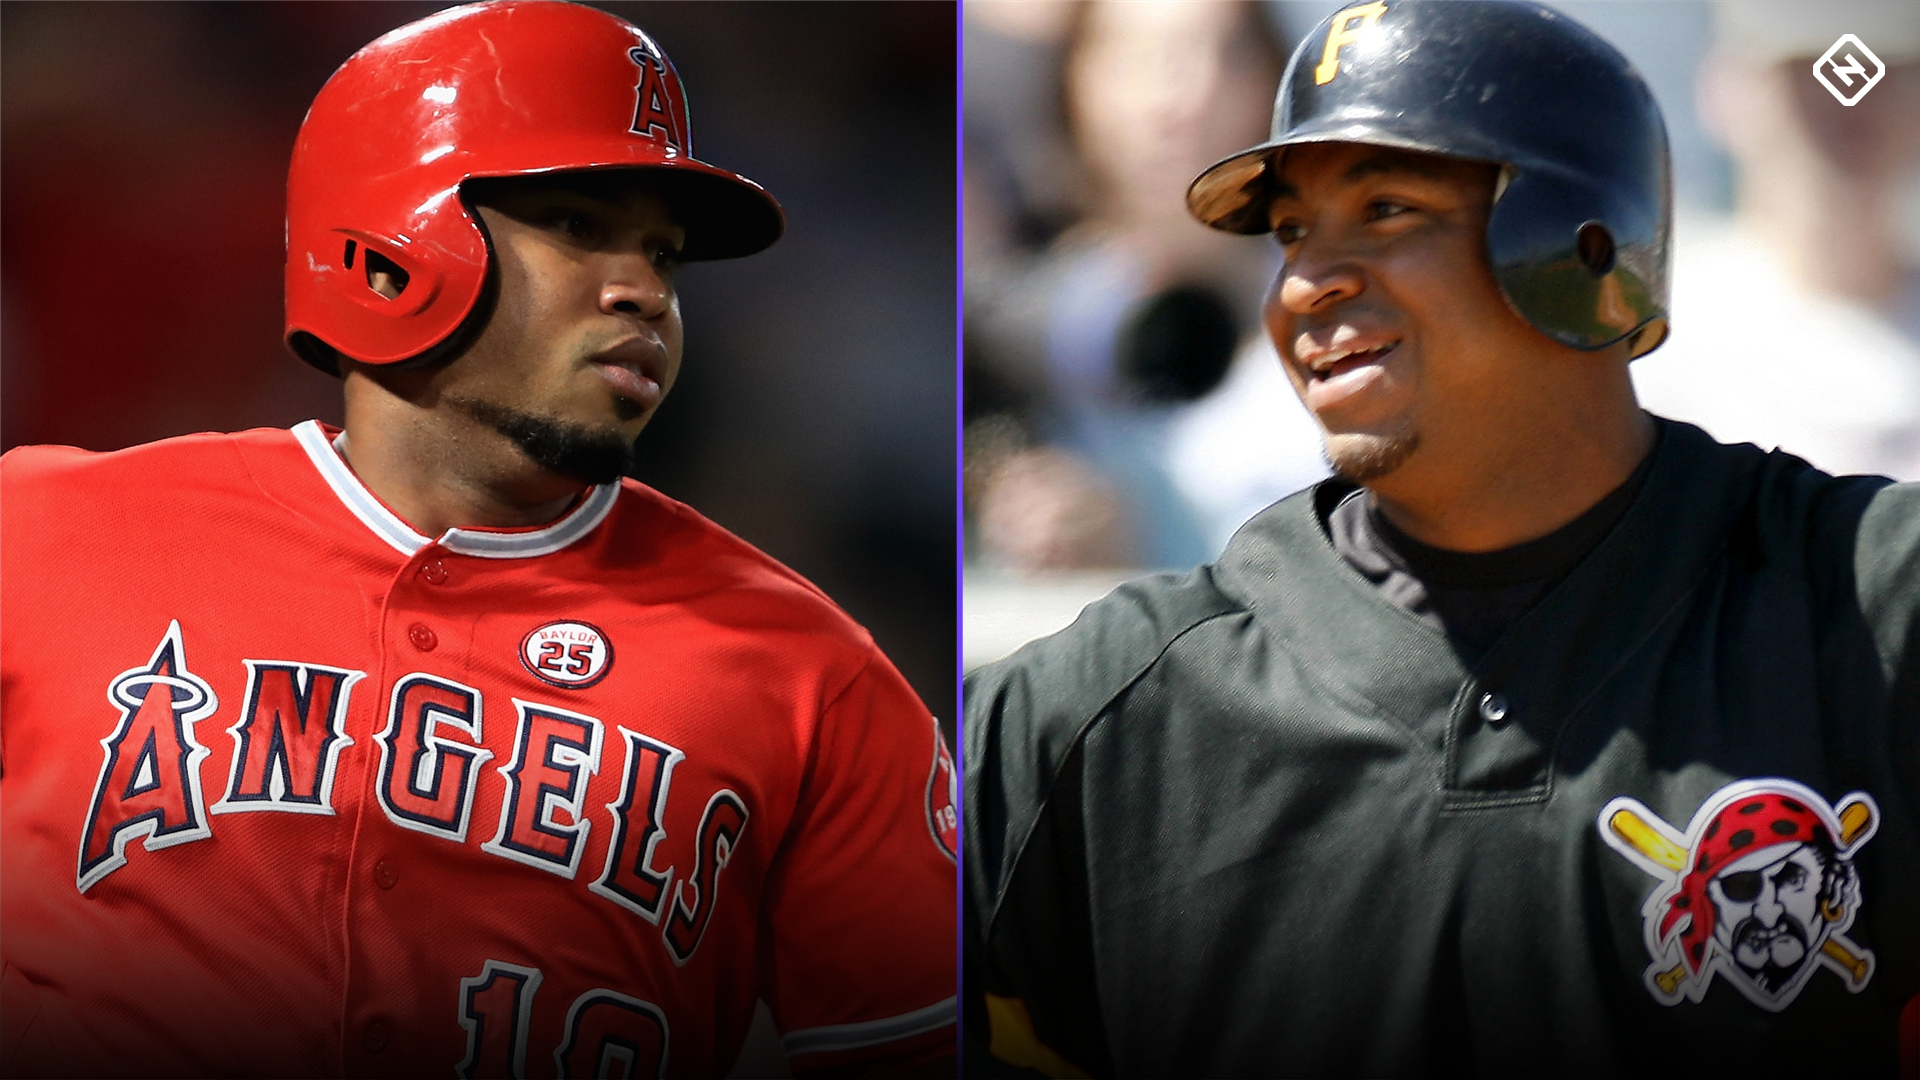 Luis Valbuena, Jose Castillo Dead After Tragic Car Accident